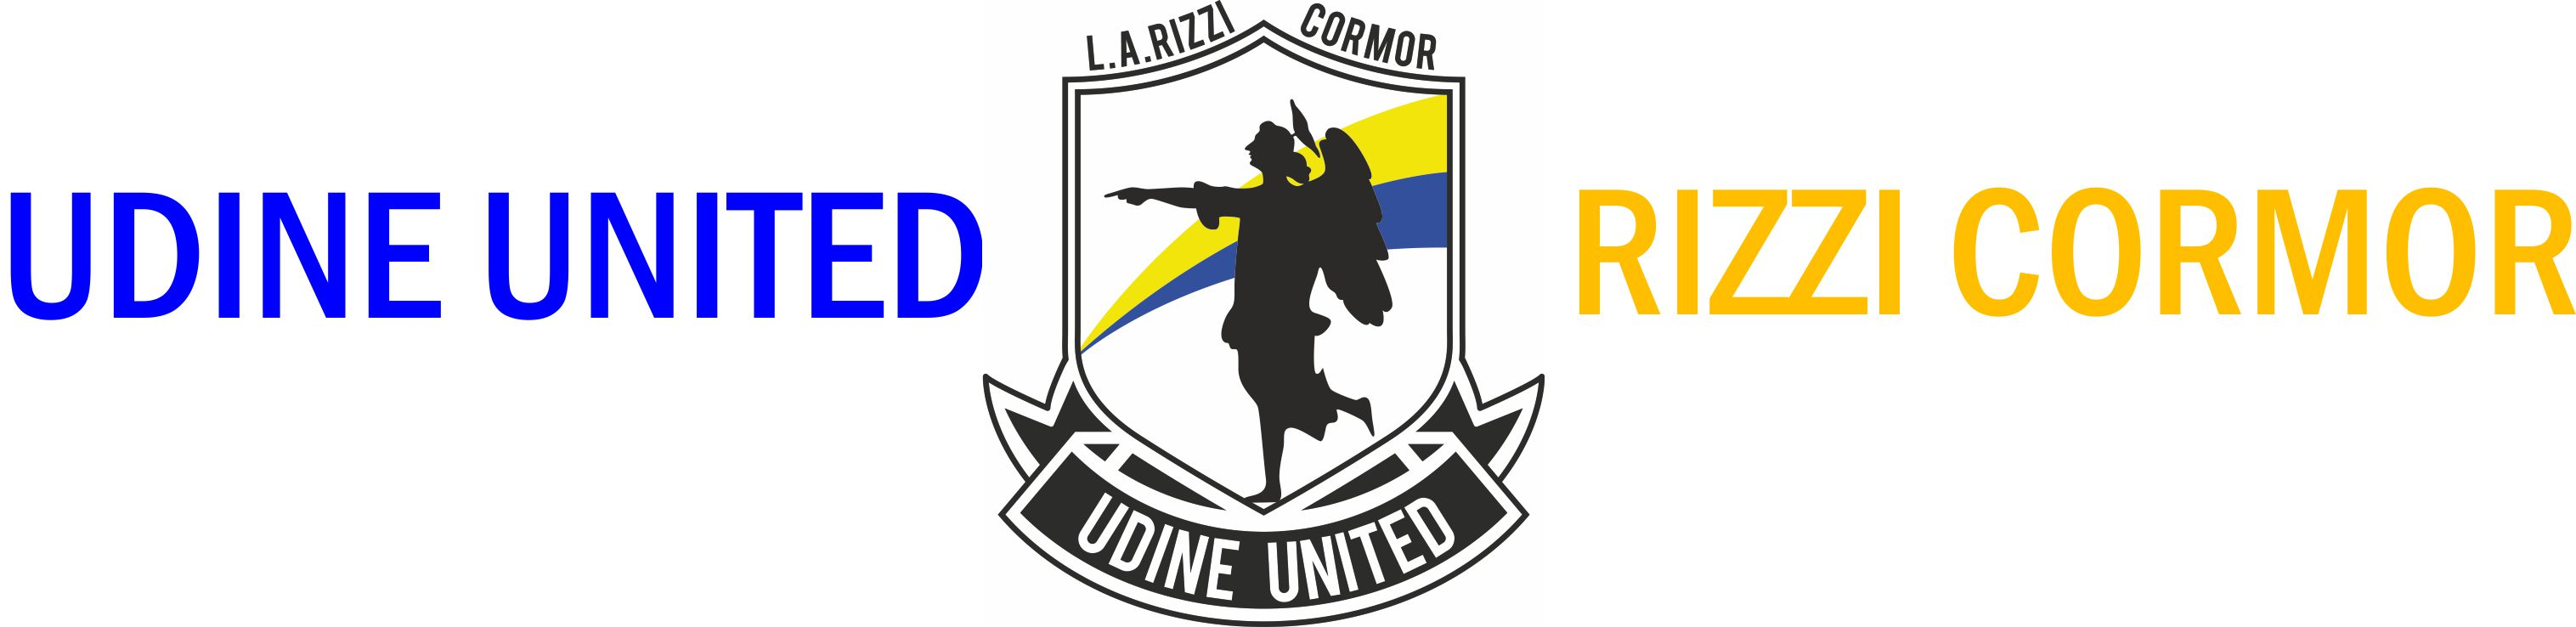 A.S.R.D. UDINE UNITED RIZZI CORMOR